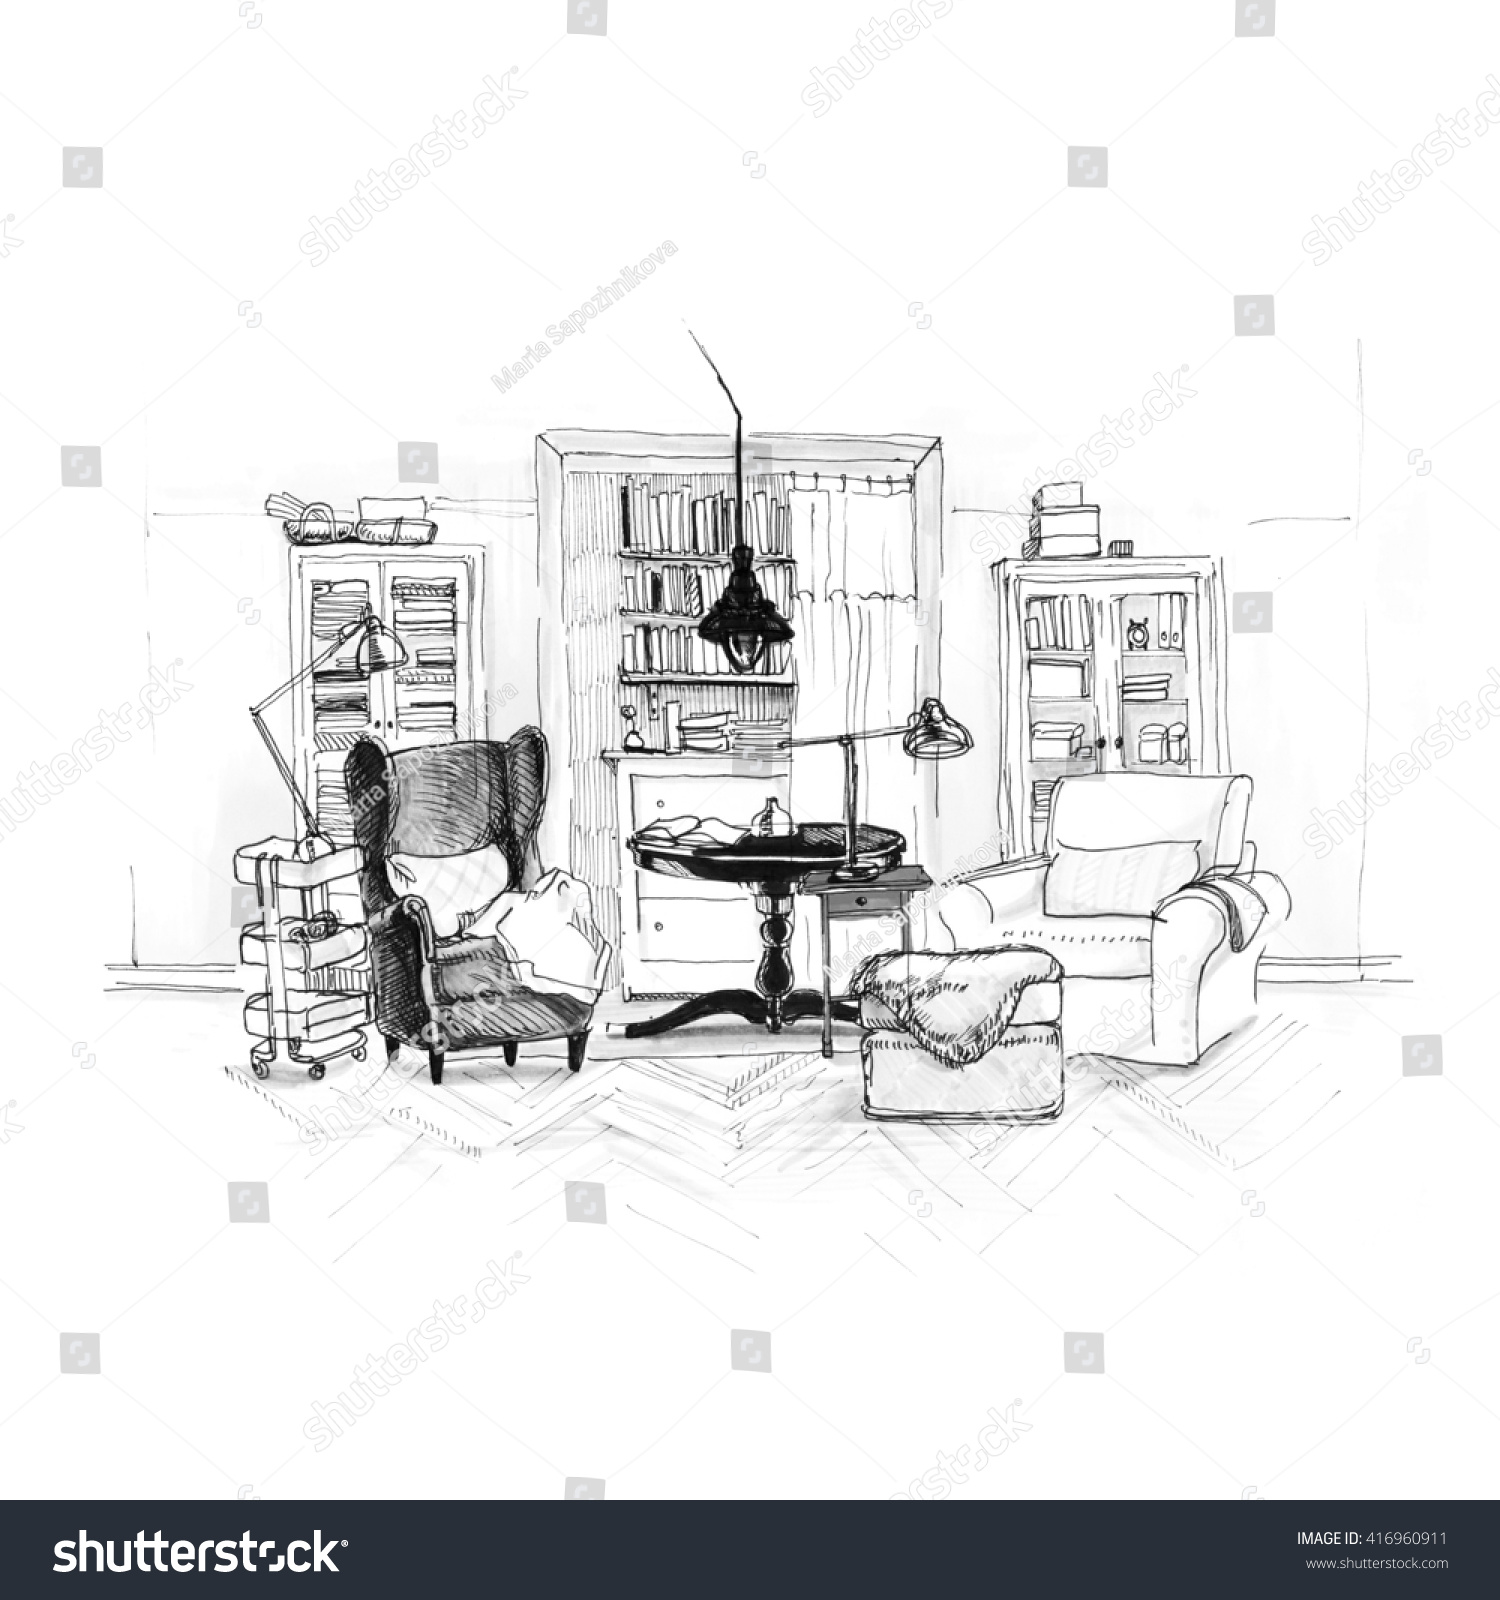 Modern interior of room with two armchairs and racks on wall background sketch trendy contemporary